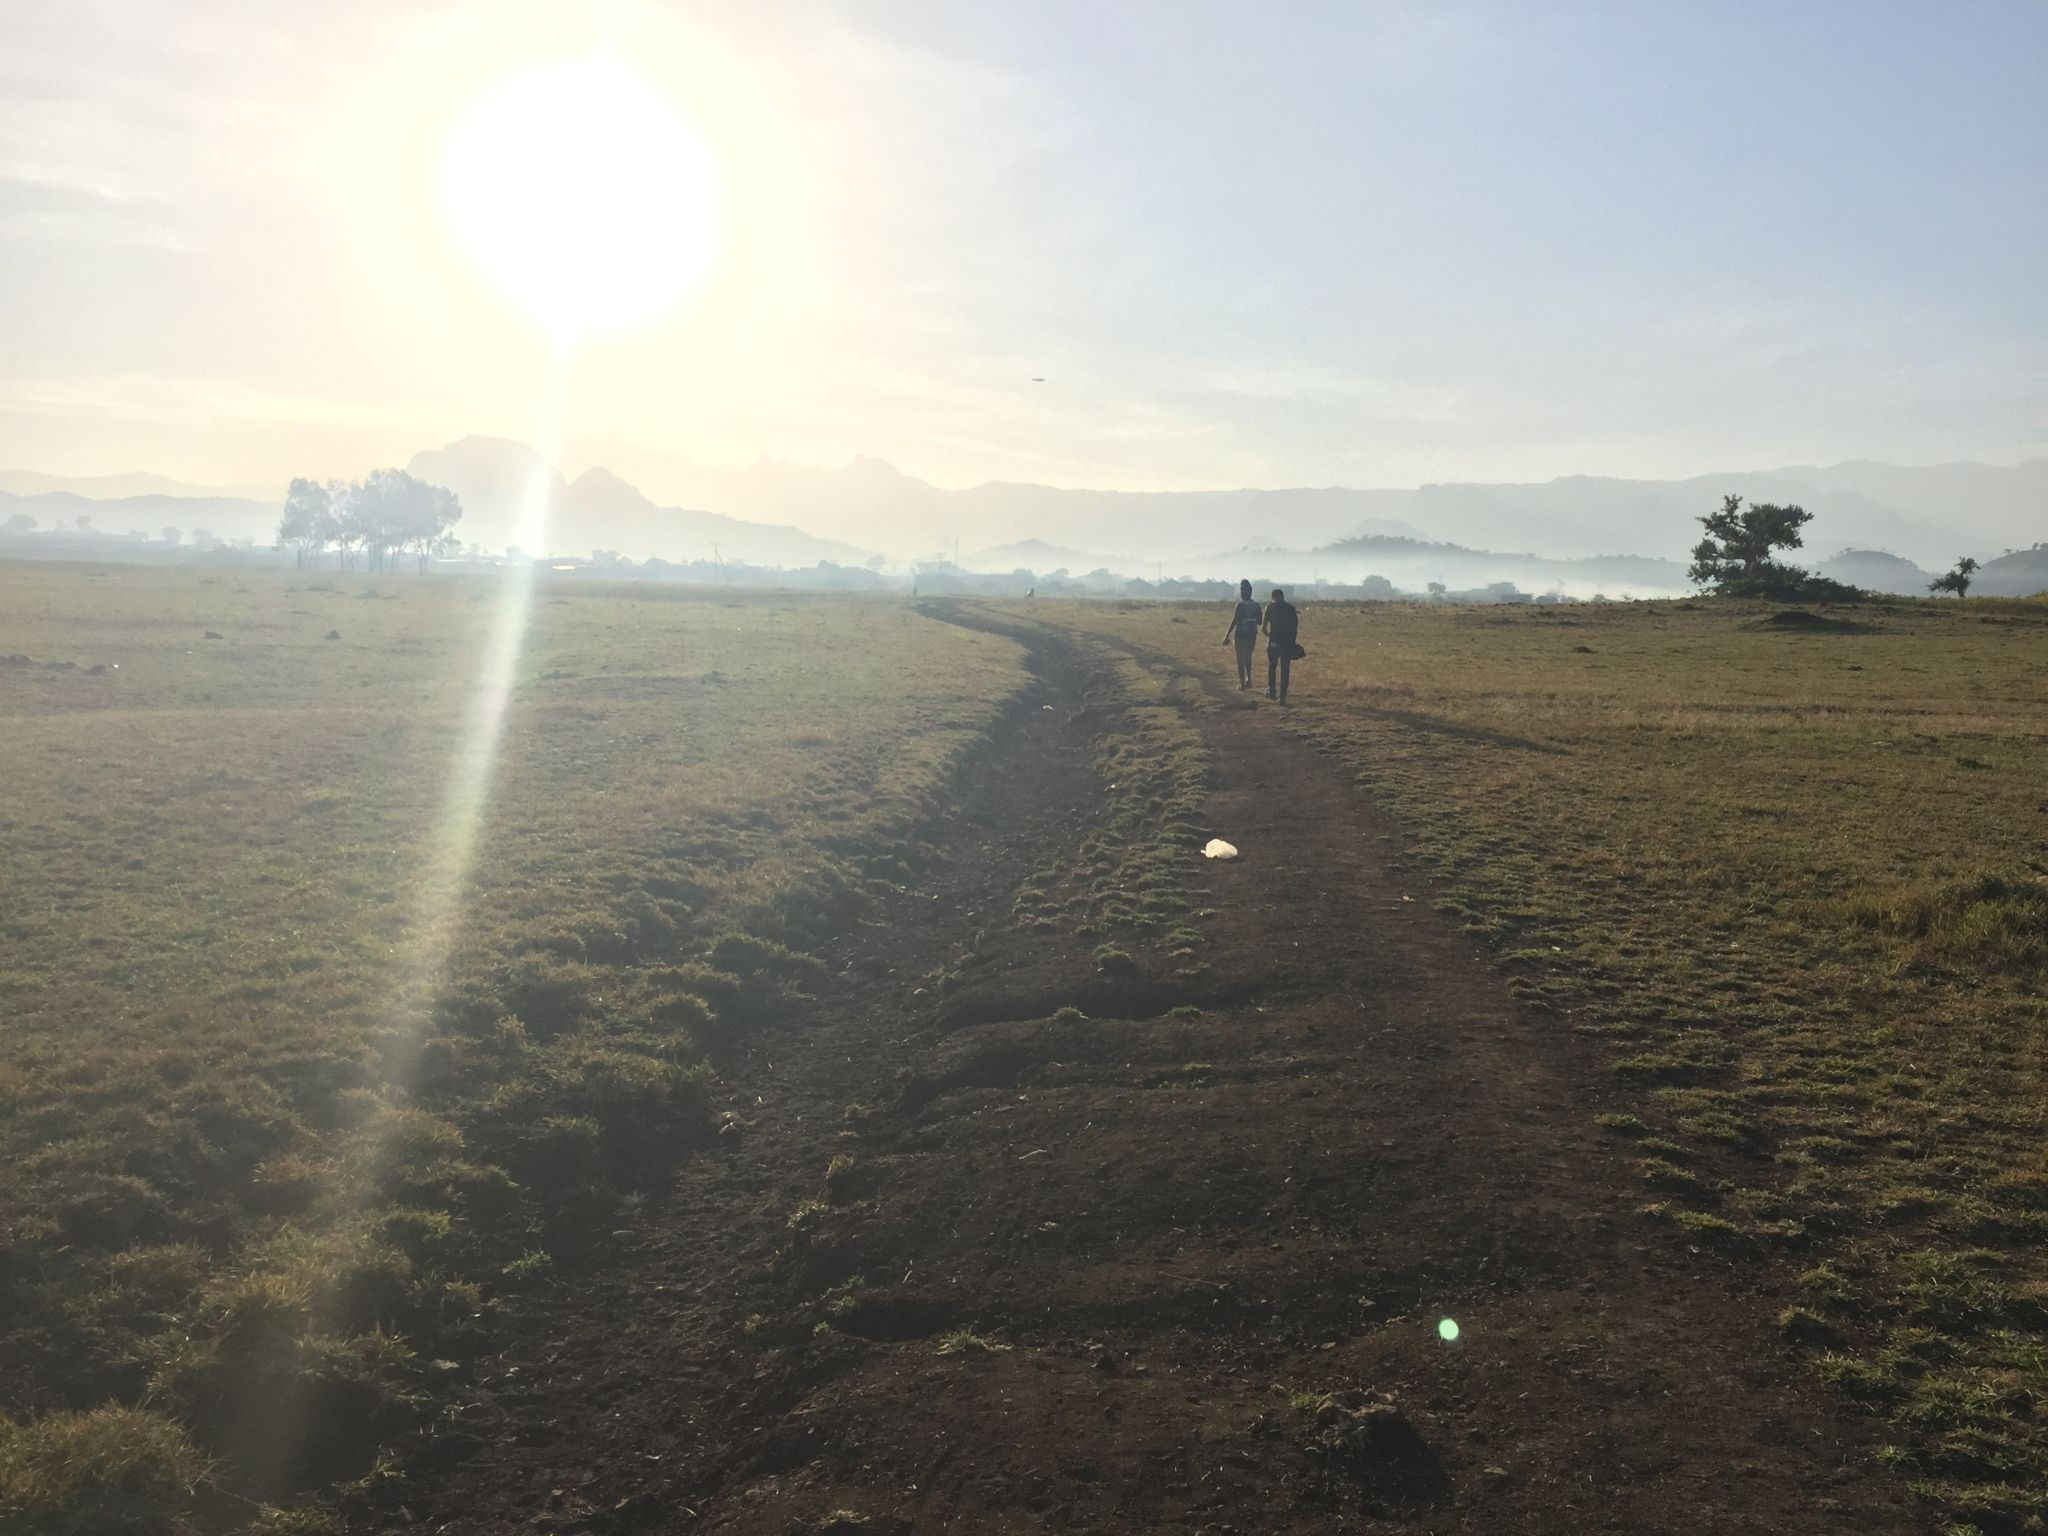 Image of Nakfa walking along through a field with sun rising in the background. Shadows of mountains loom in the distance.